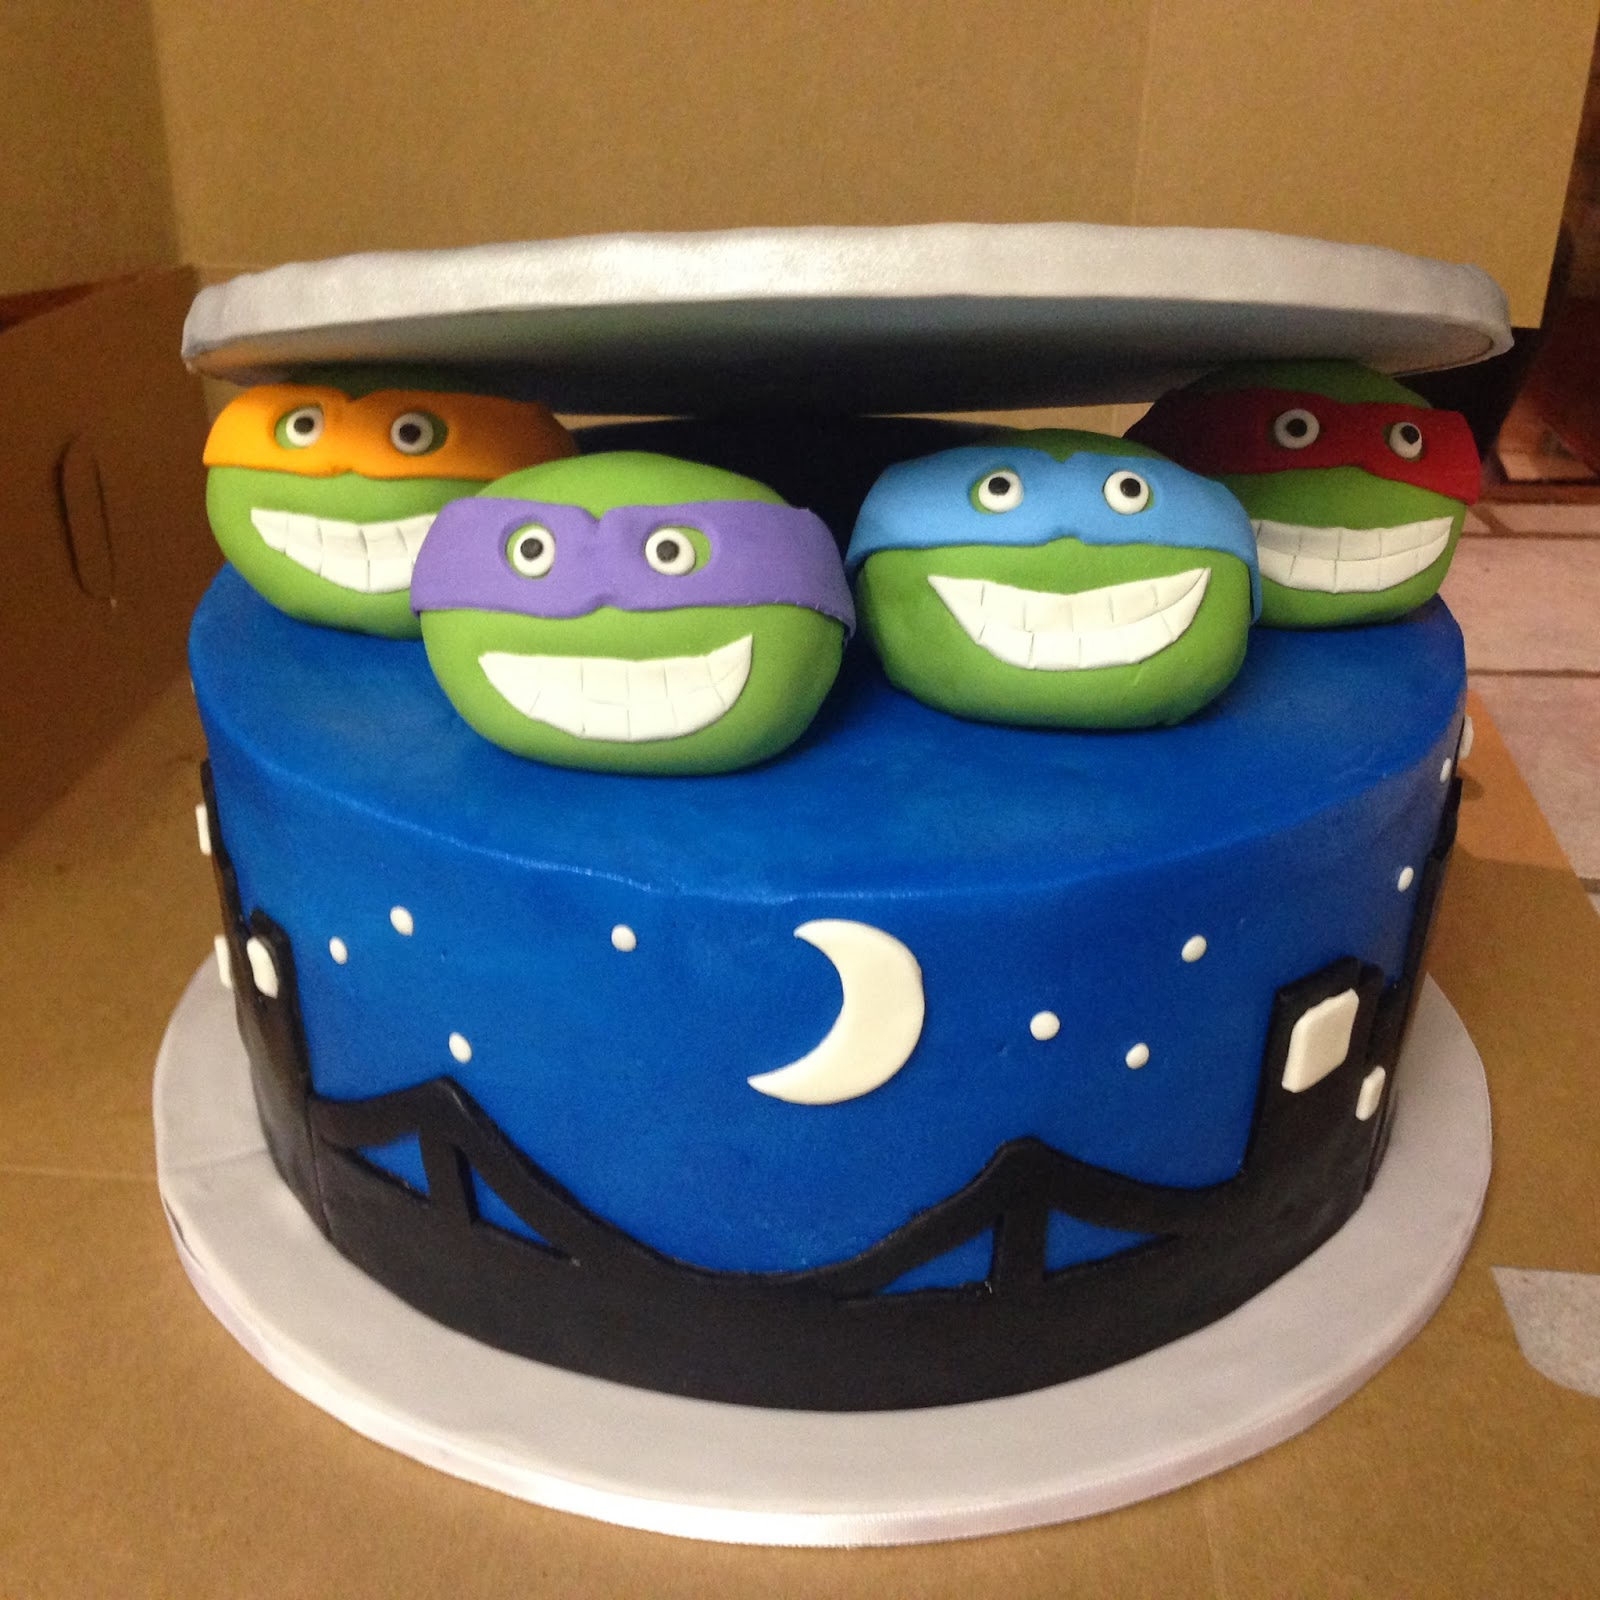 Cakes By Mindy Teenage Mutant Ninja Turtles Cake 10